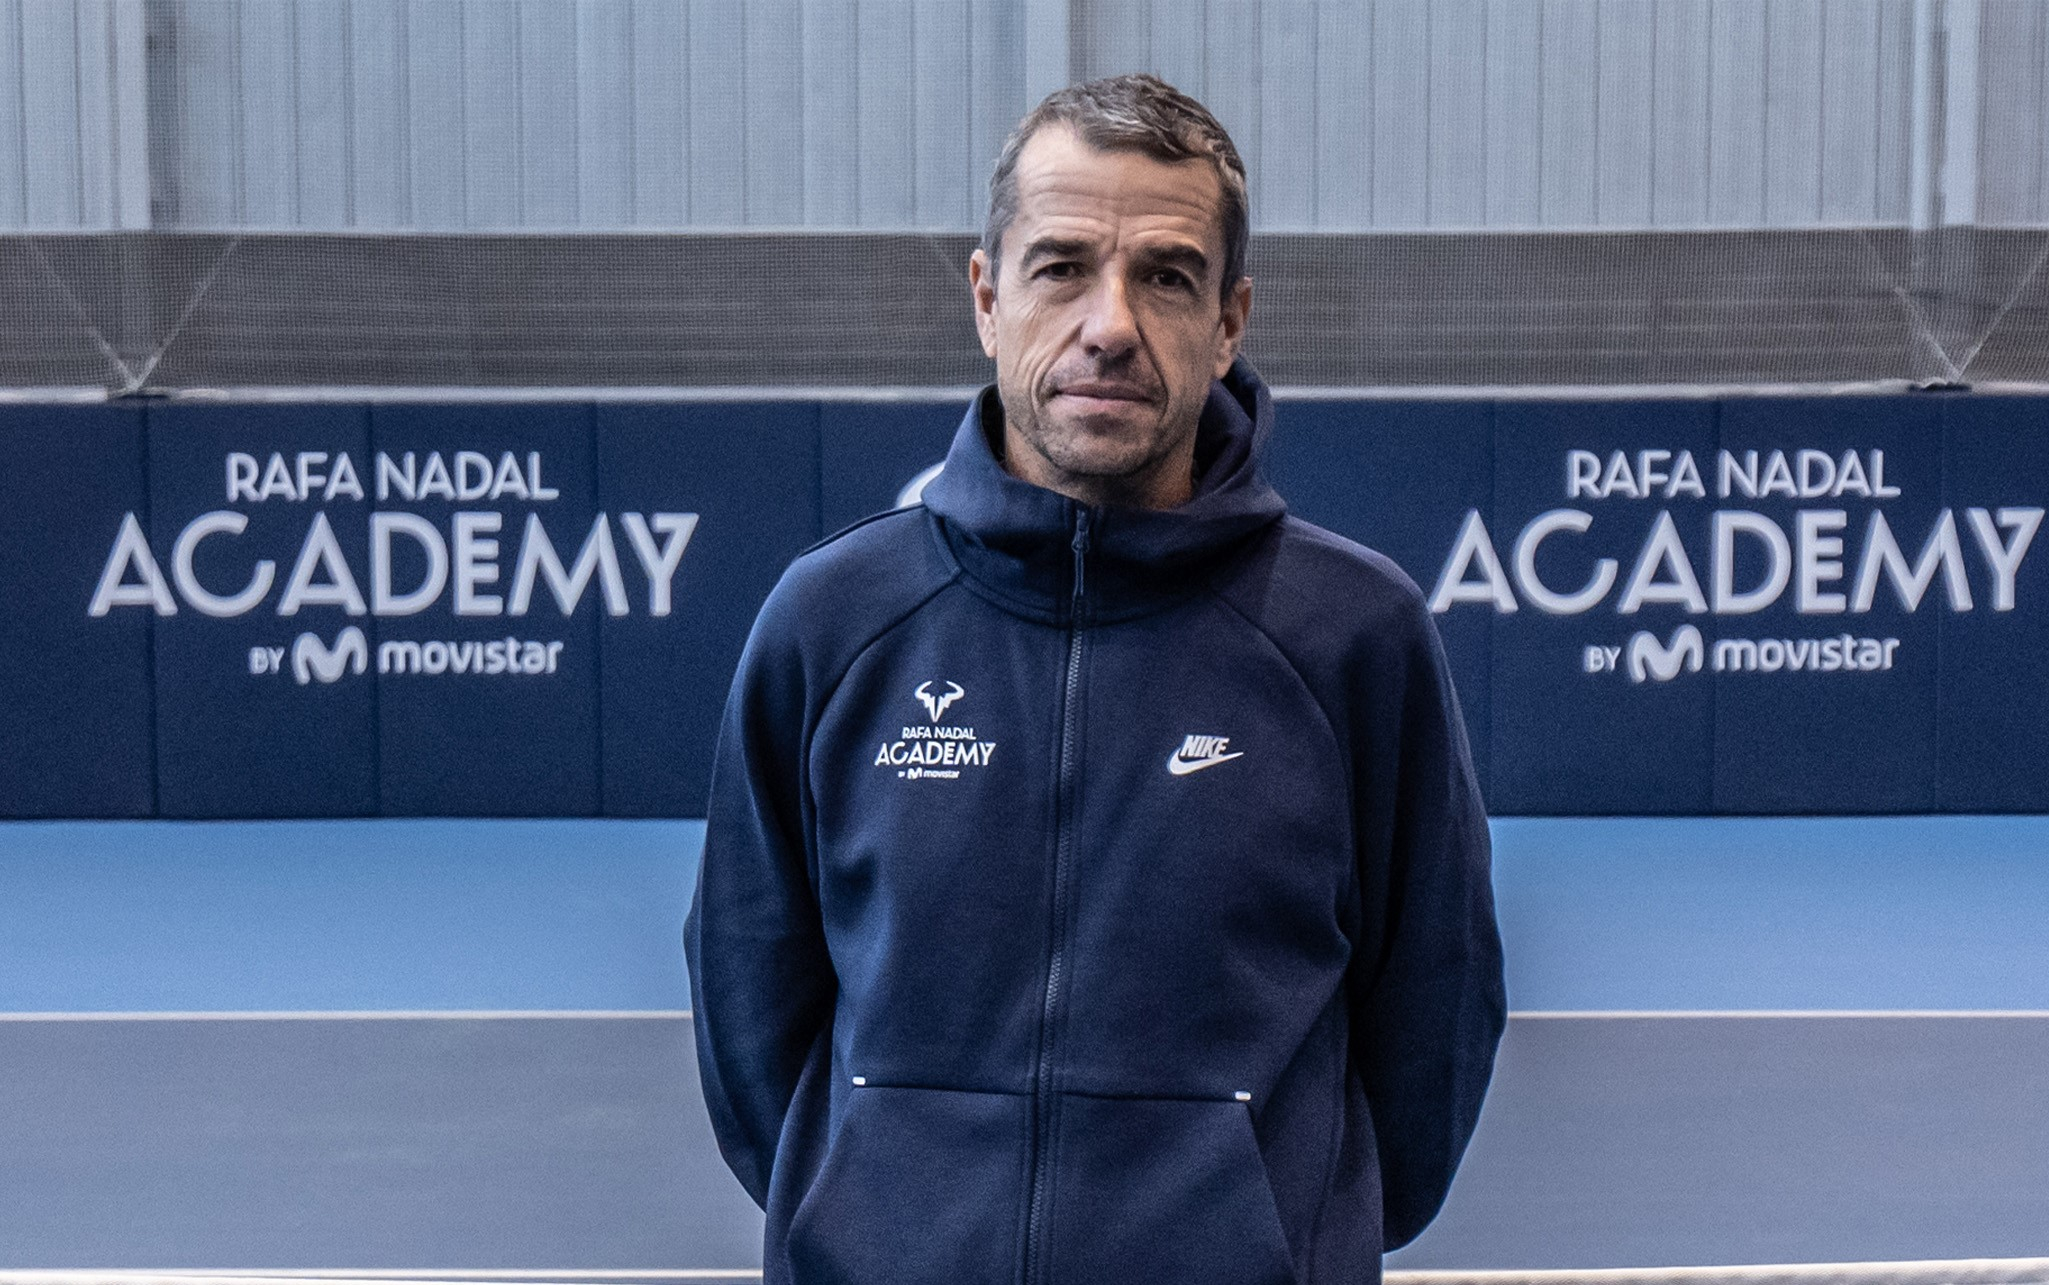 Pepo Clavet joins the Rafa Nadal Academy by Movistar